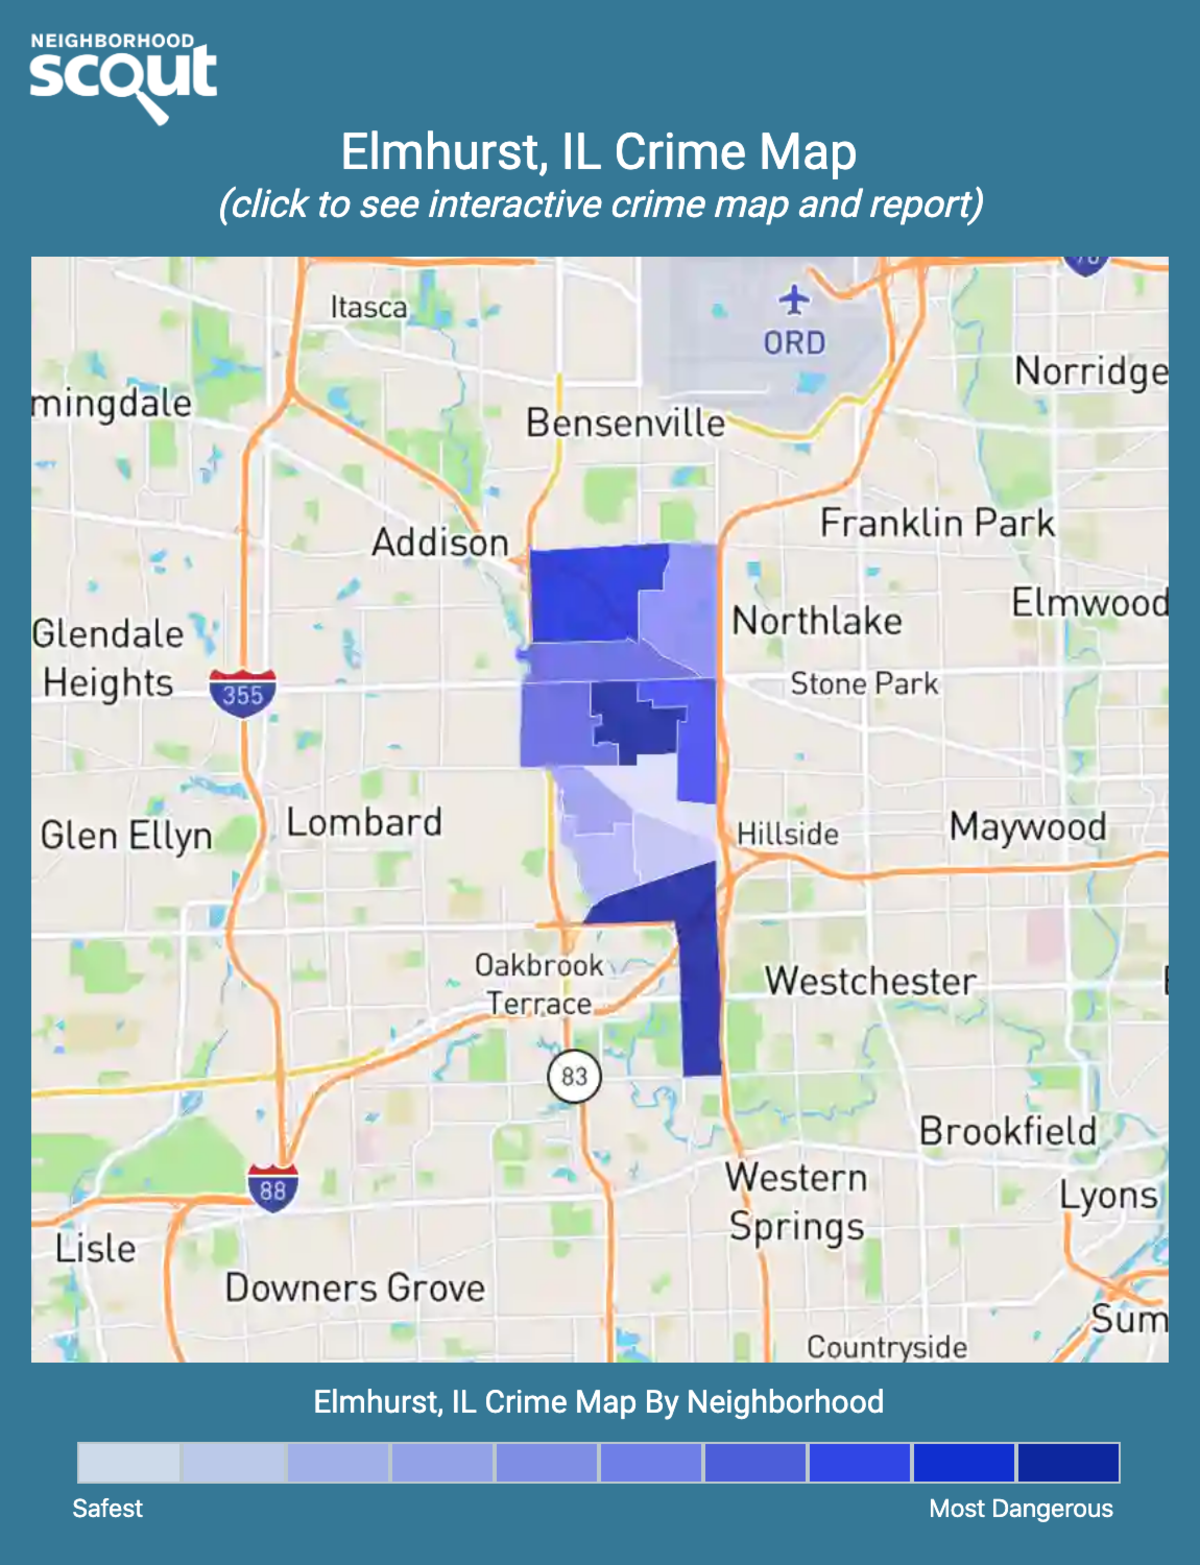 Elmhurst, Illinois crime map